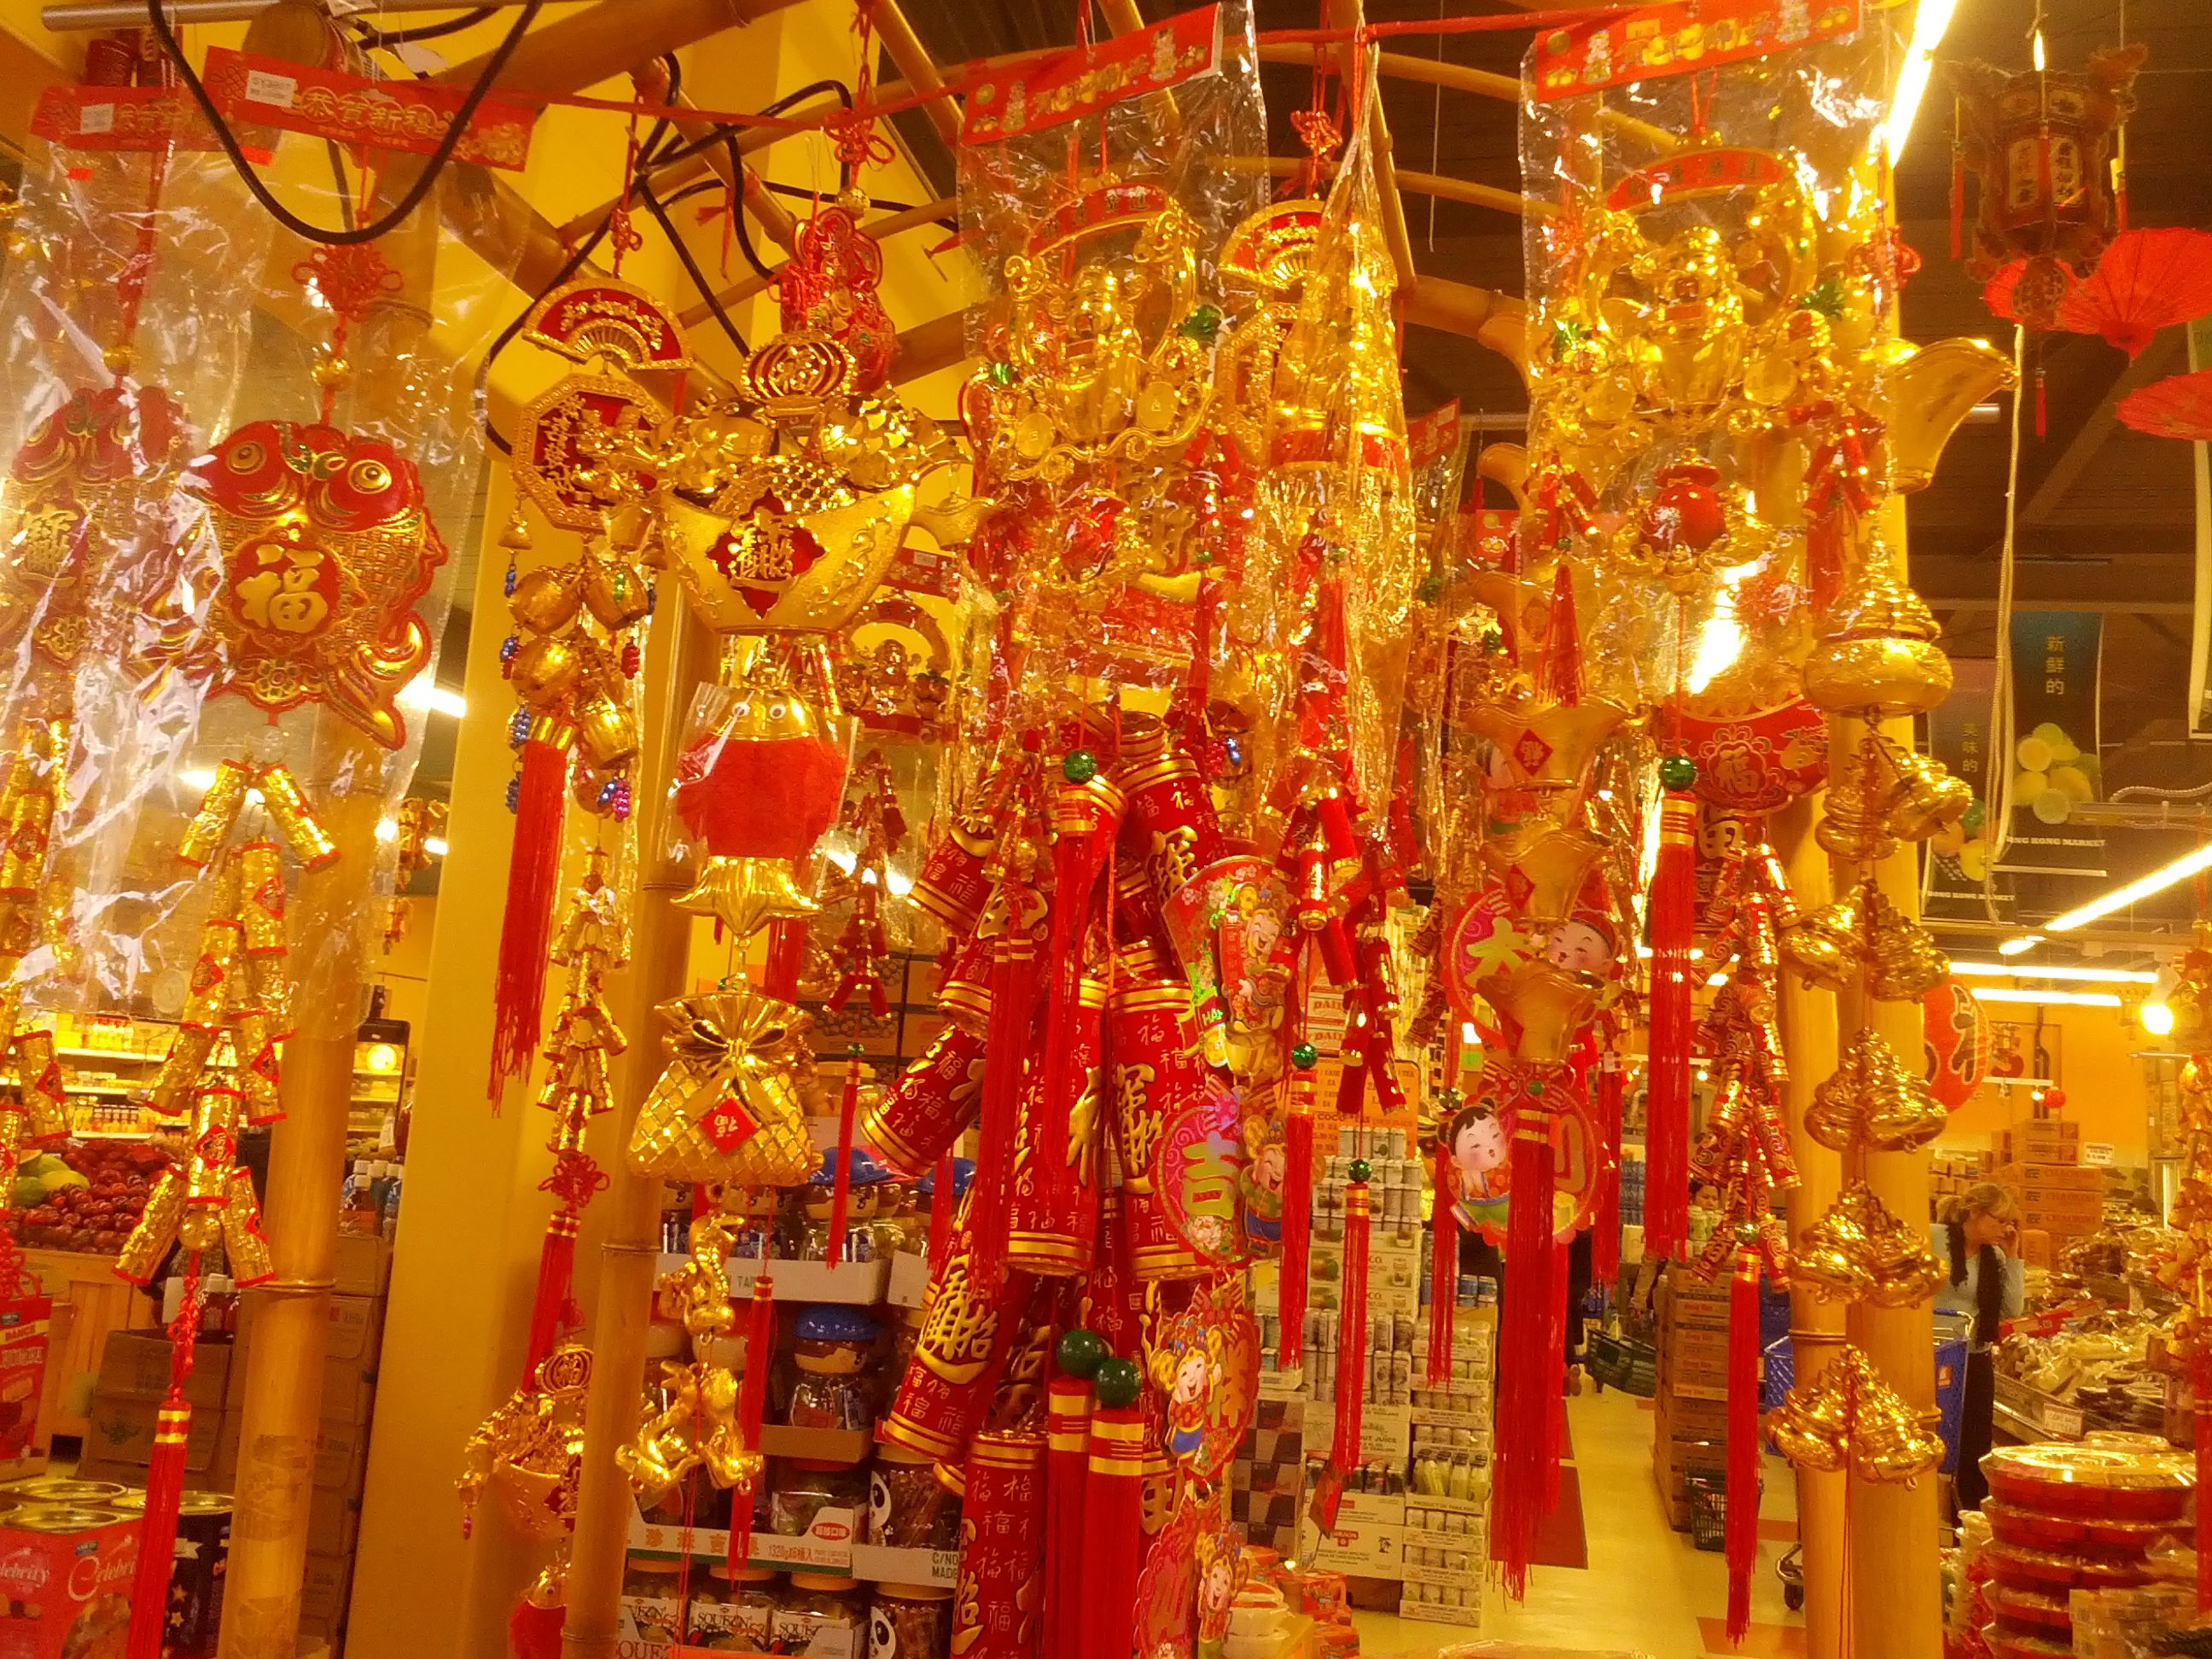 Hong Kong Market celebrating Chinese New Year with their